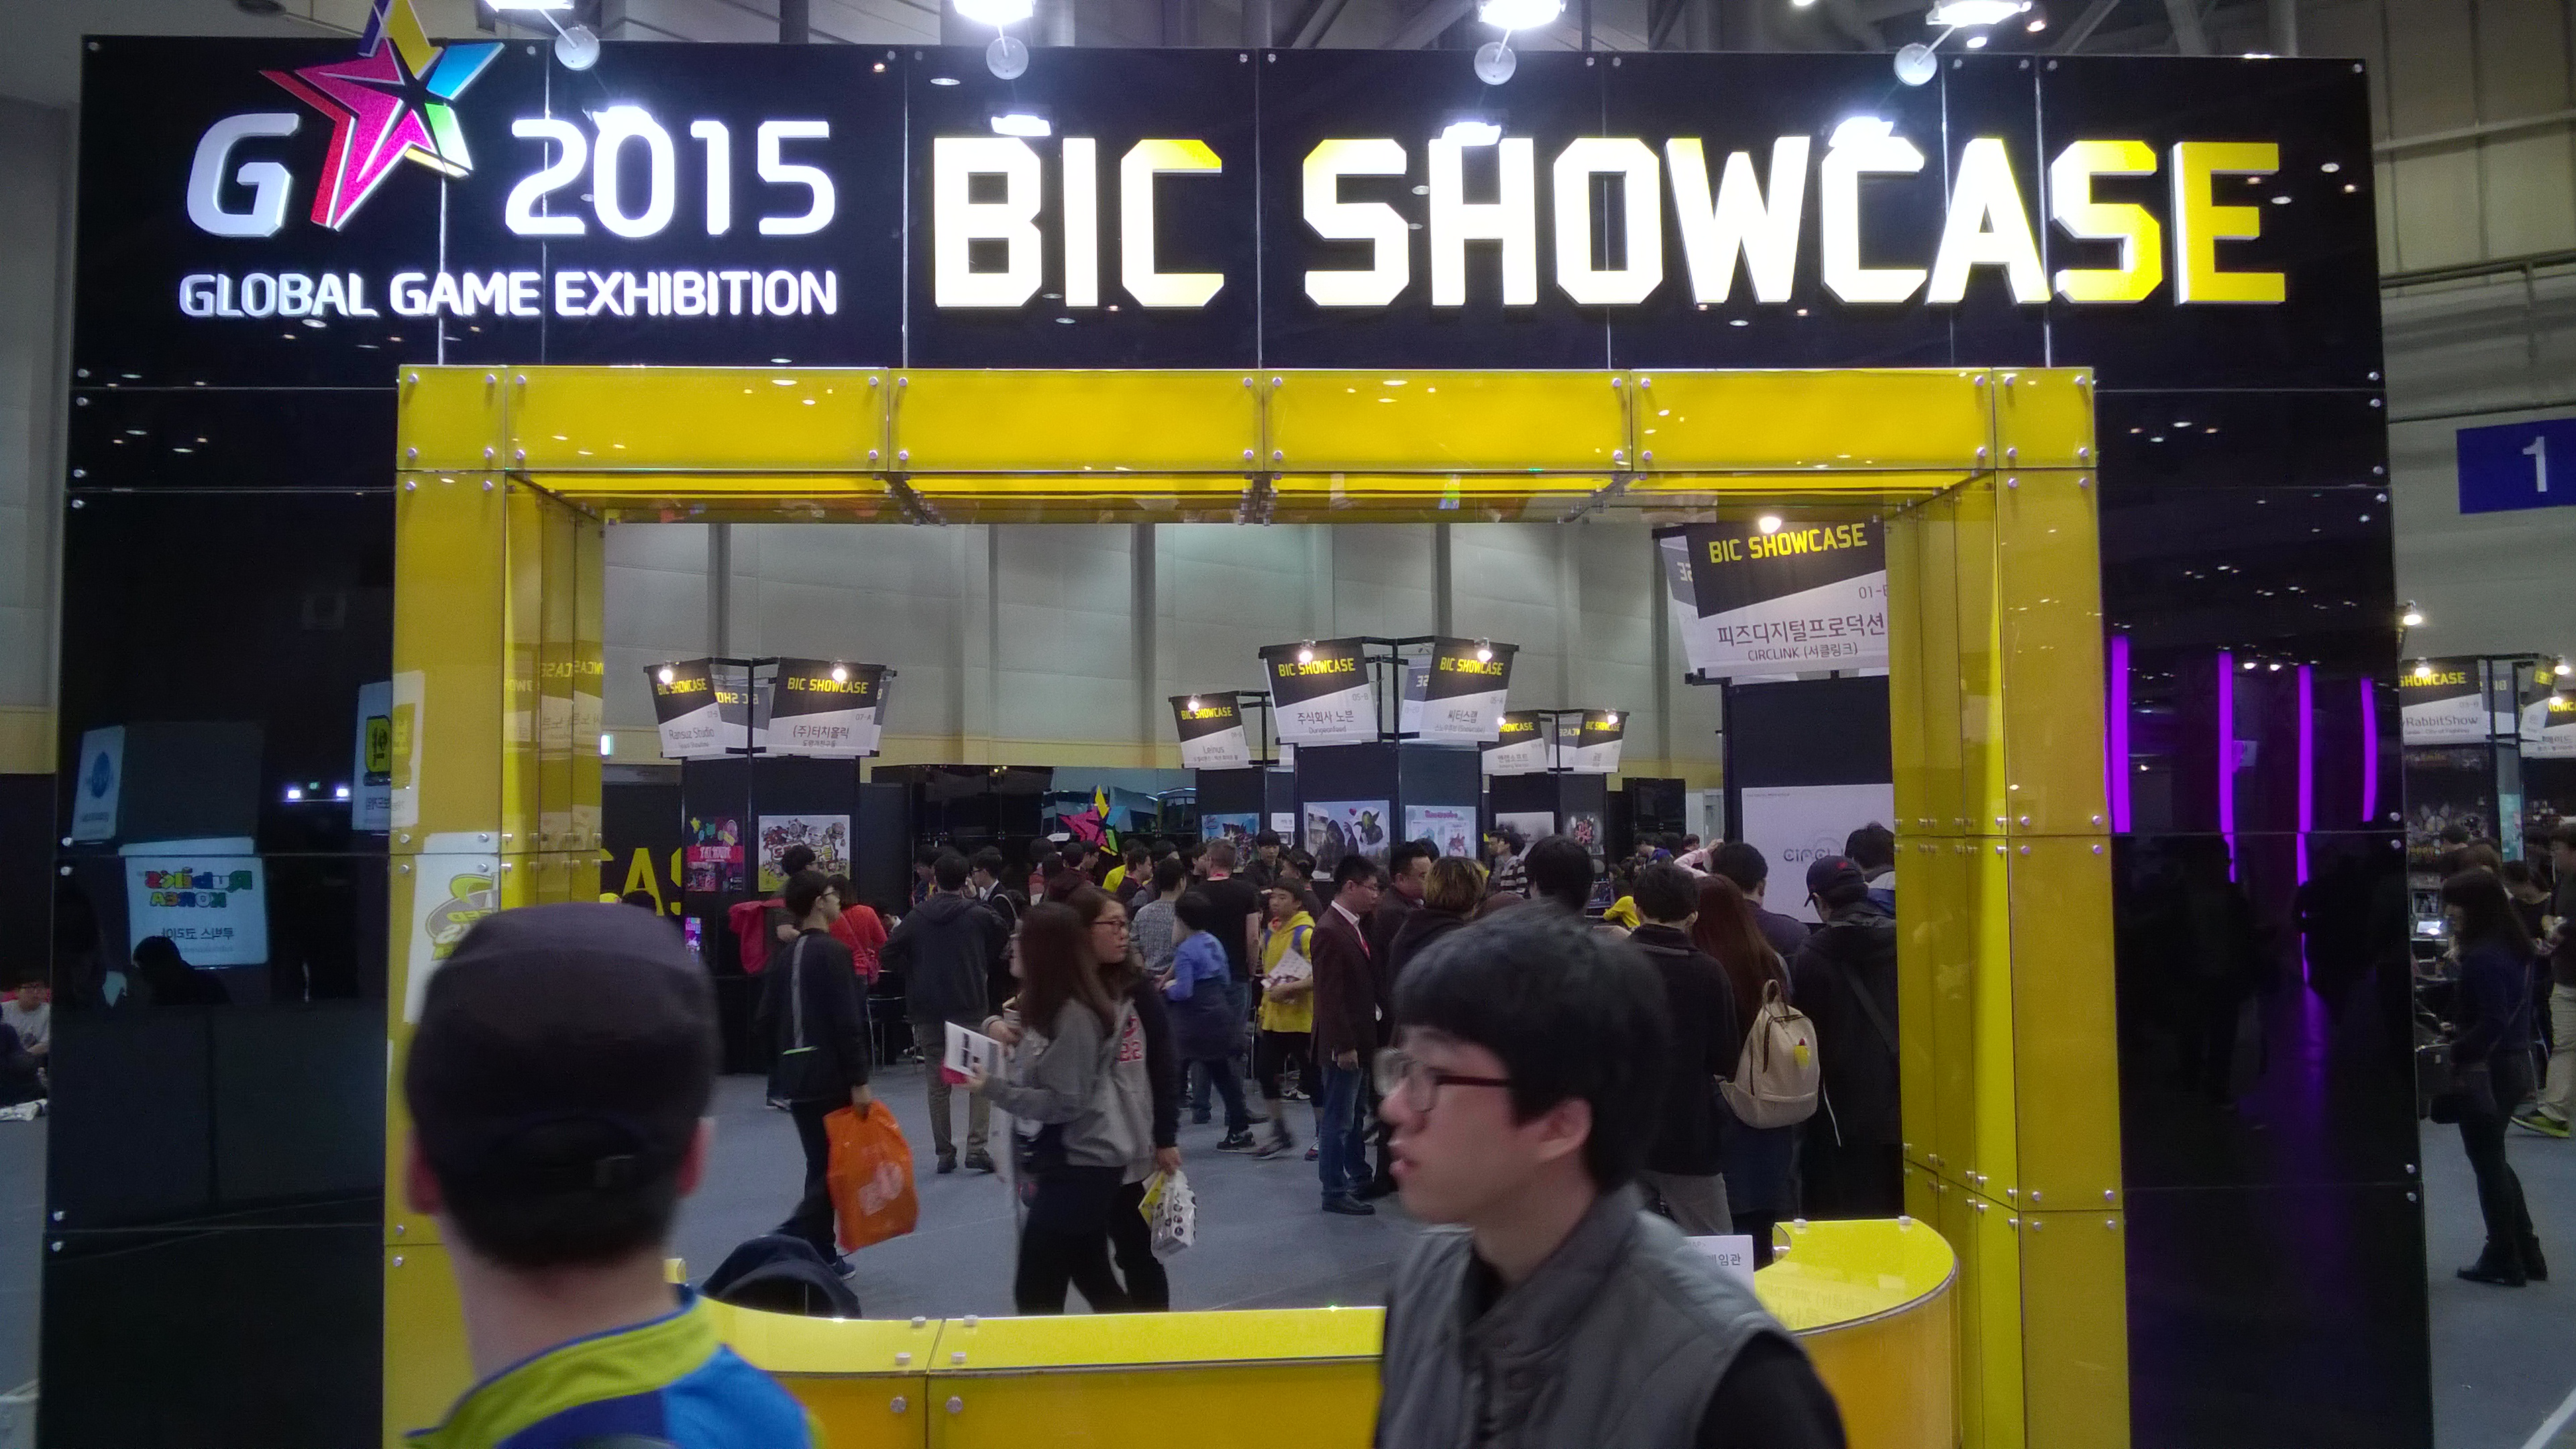 Every game we saw at G-Star 2015: The BIC indie games showcase